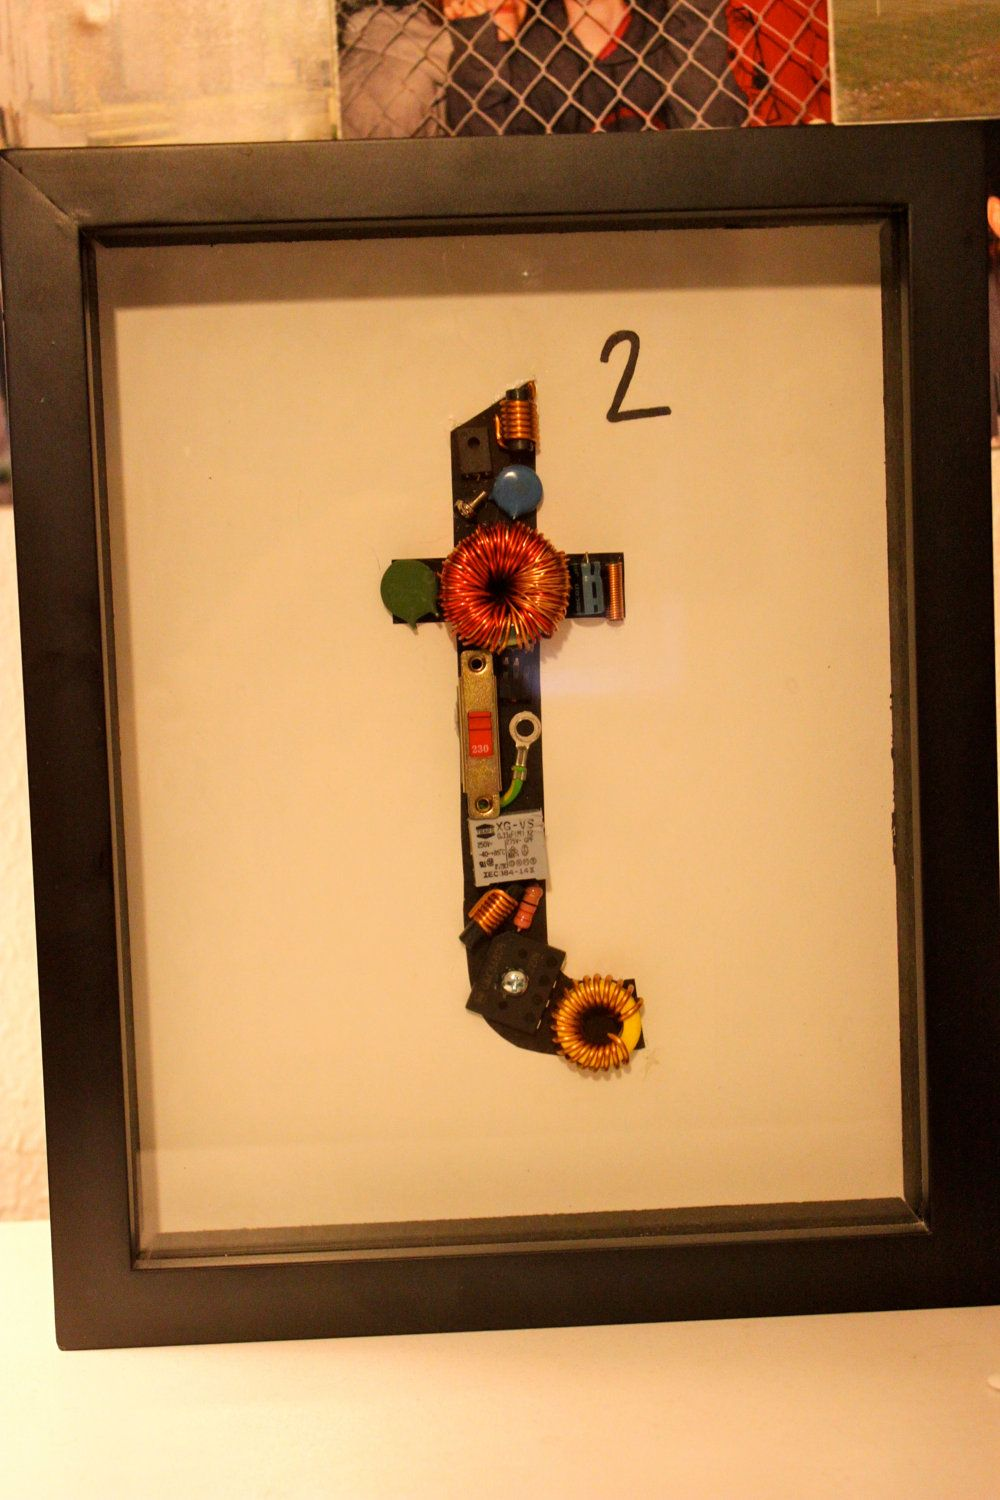 Clea Teal Cleateal On Pinterest Pcb Sculptures Artist Upcycles Old Circuit Boards Into Art